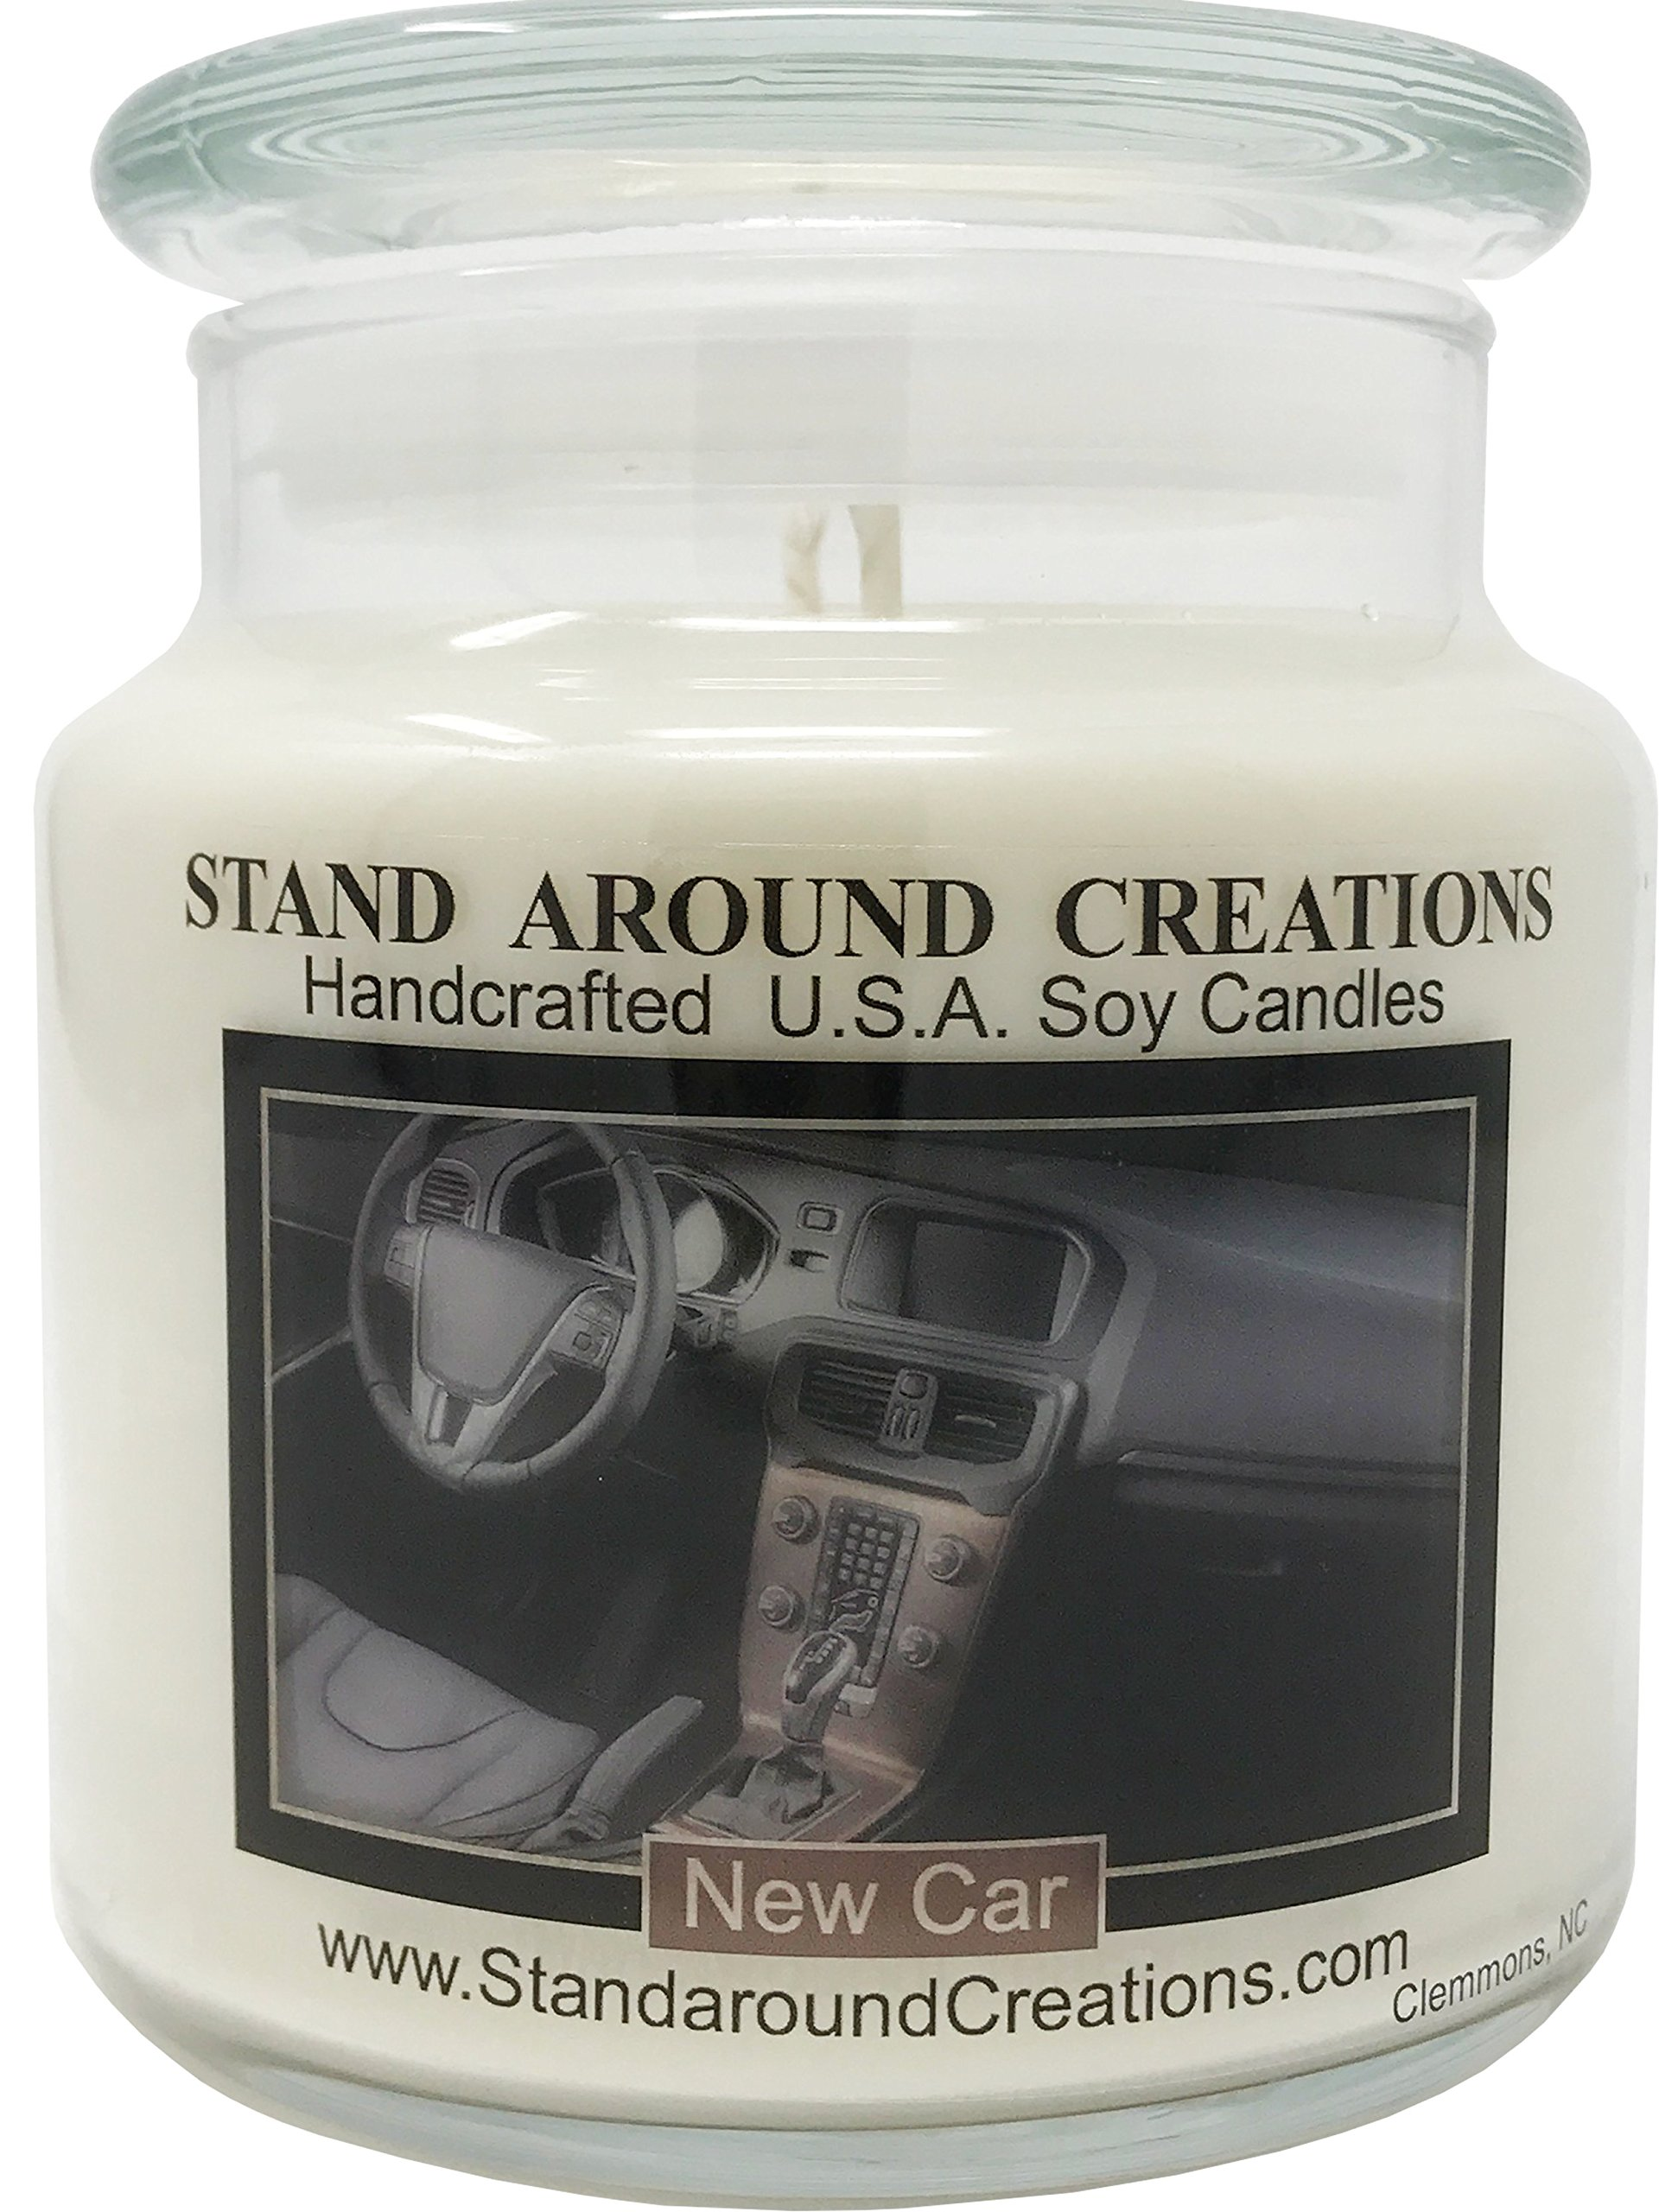 Premium 100% All Natural Soy Apothecary Candle -16 oz.- New Car - A Popular Bathroom fragrance. The smell of a new sports car w/ Italian leather seats! Naturally Strong, Highly Scented.